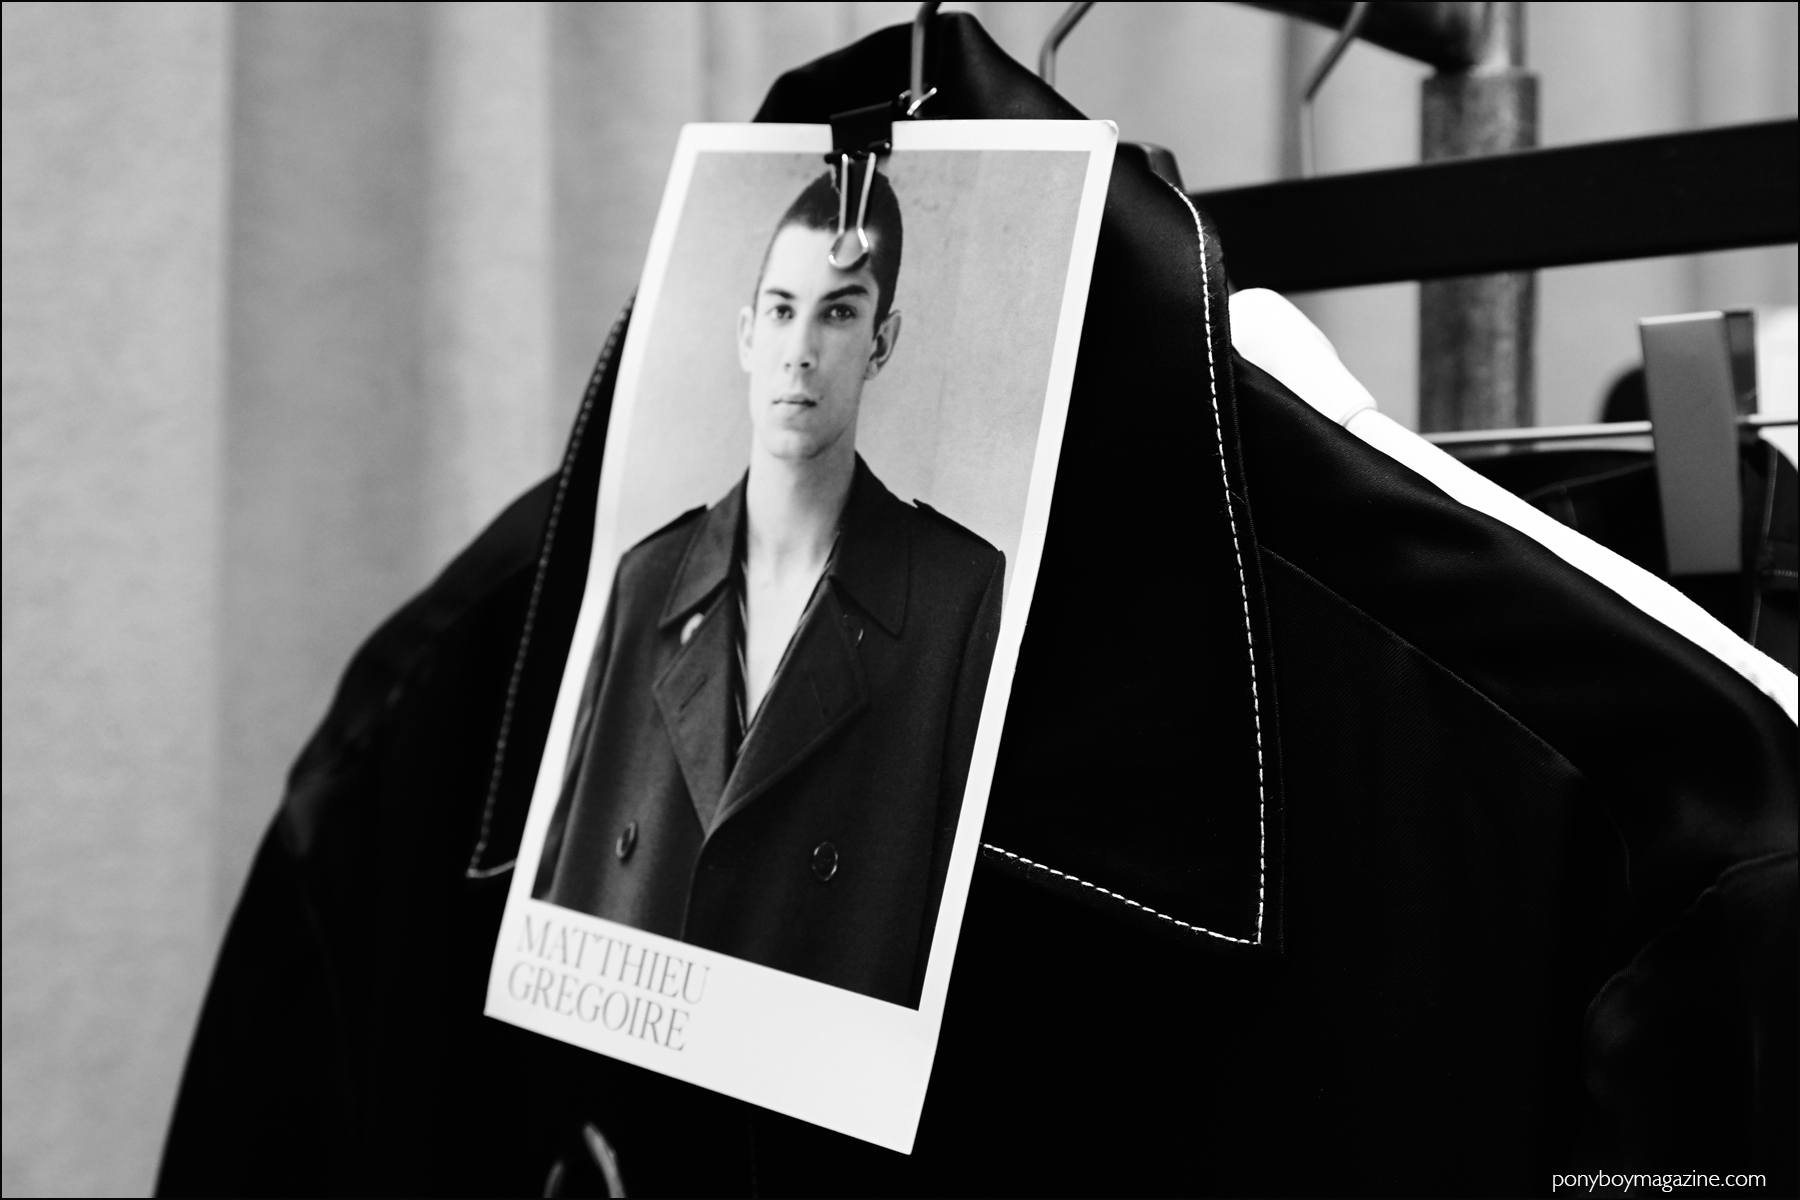 Model card of Matthieu Gregoire photographed backstage at Kenneth Ning F/W16 menswear show. Photography by Alexander Thompson for Ponyboy magazine NY.